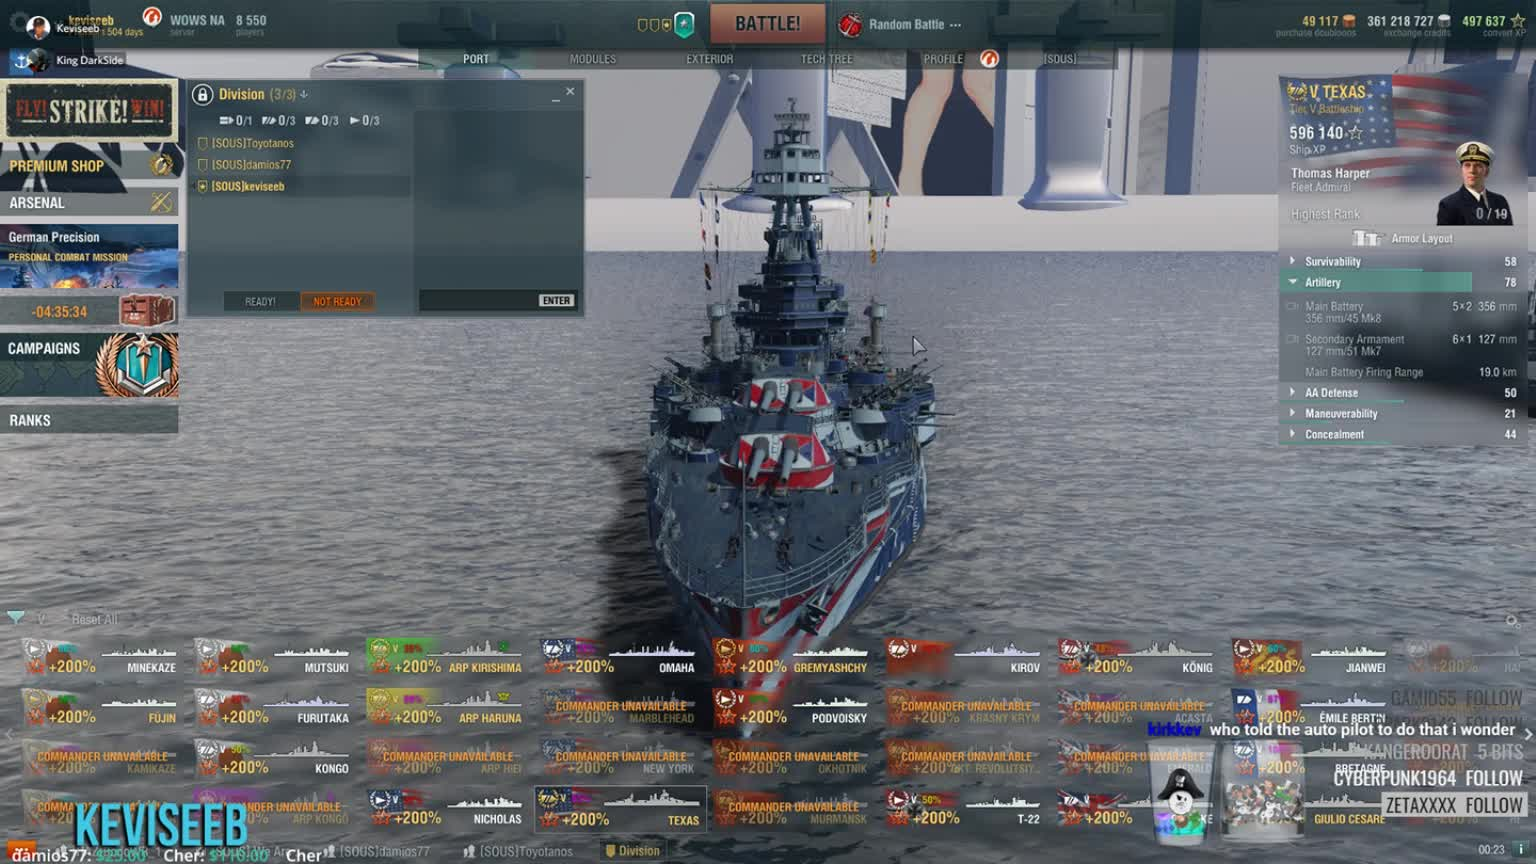 keviseeb - Keviseeb, Oldest Streamer NA, WOWS, DAMN THE (HAK